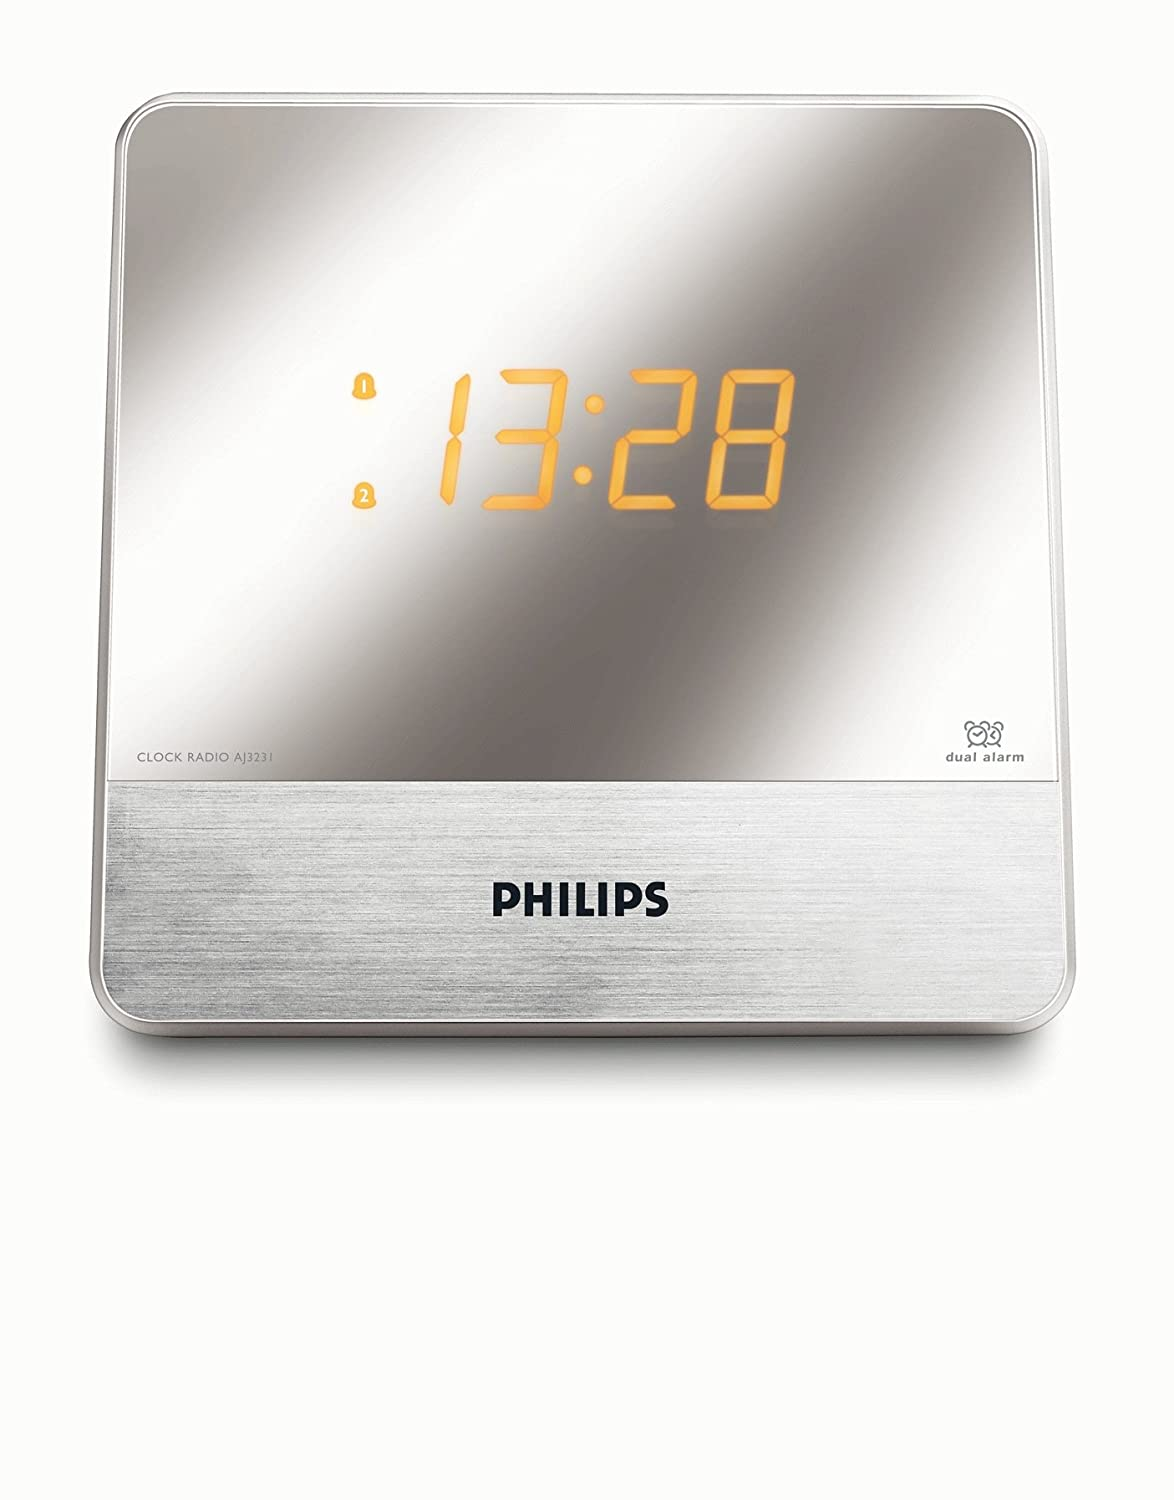 Philips - Radio (Reloj, Digital, FM, MW, 0,1 W, 14 cm, 6,1 cm): Amazon.es: Electrónica